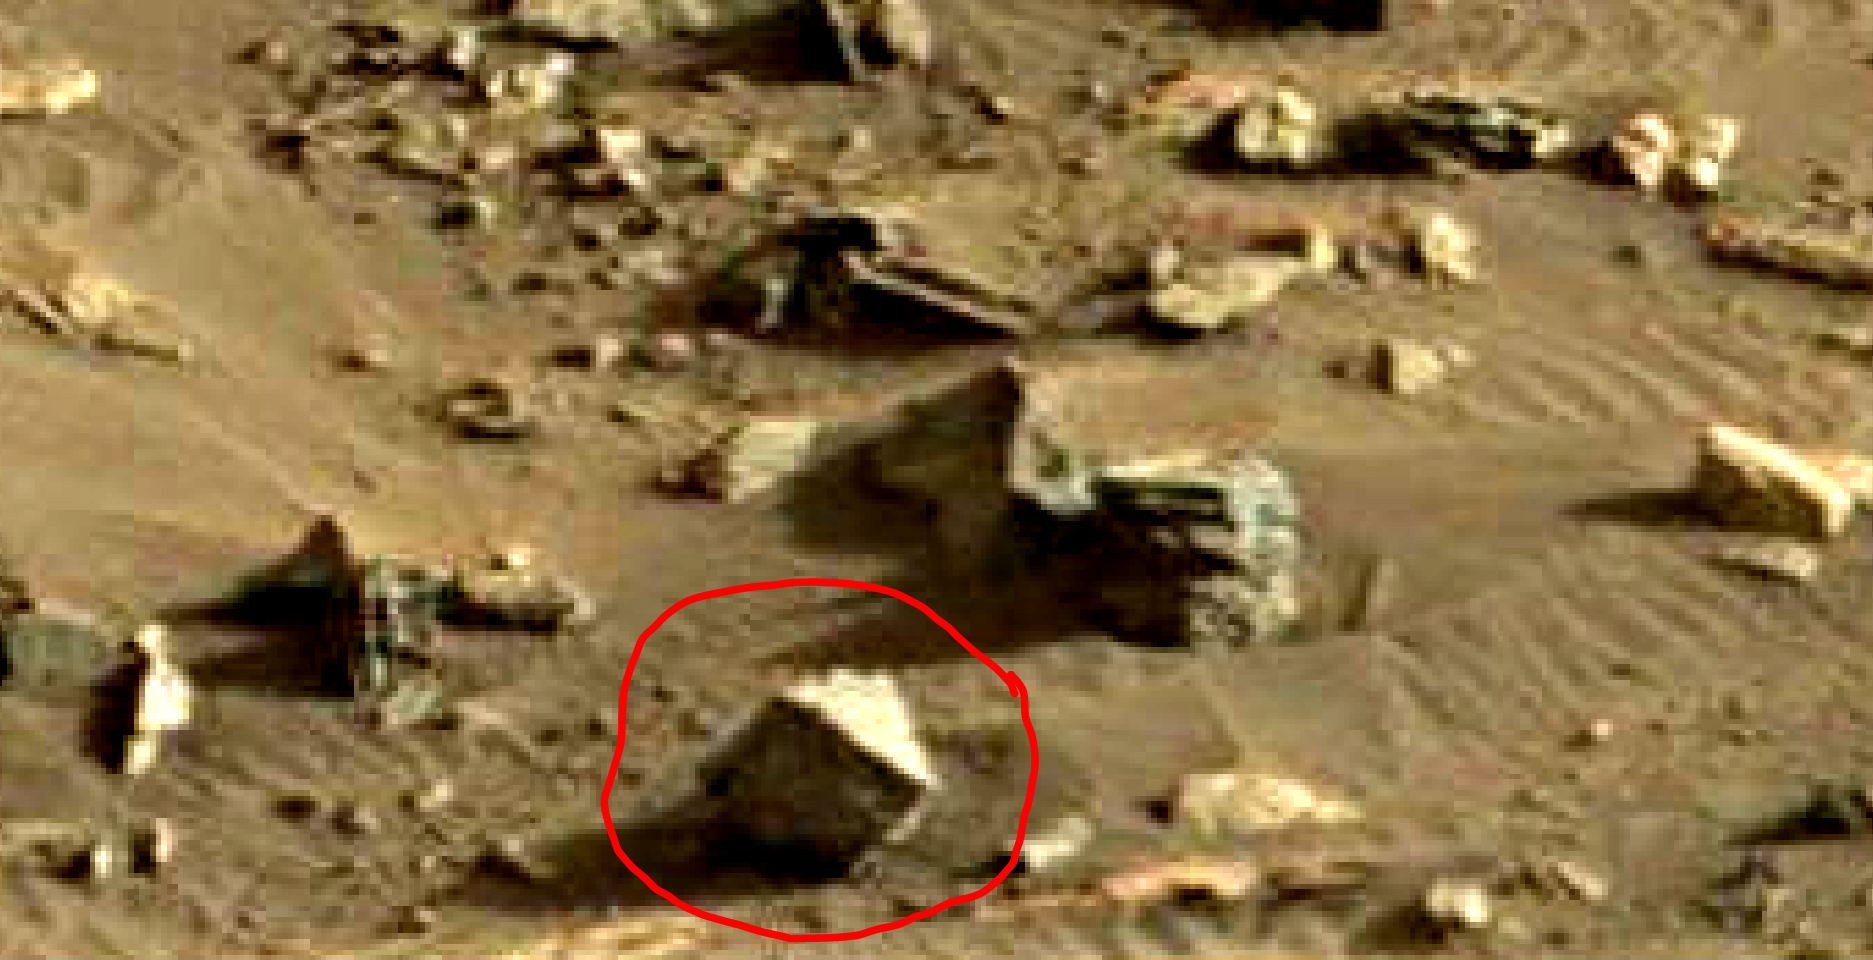 mars sol 1419 anomaly artifacts 9 was life on mars